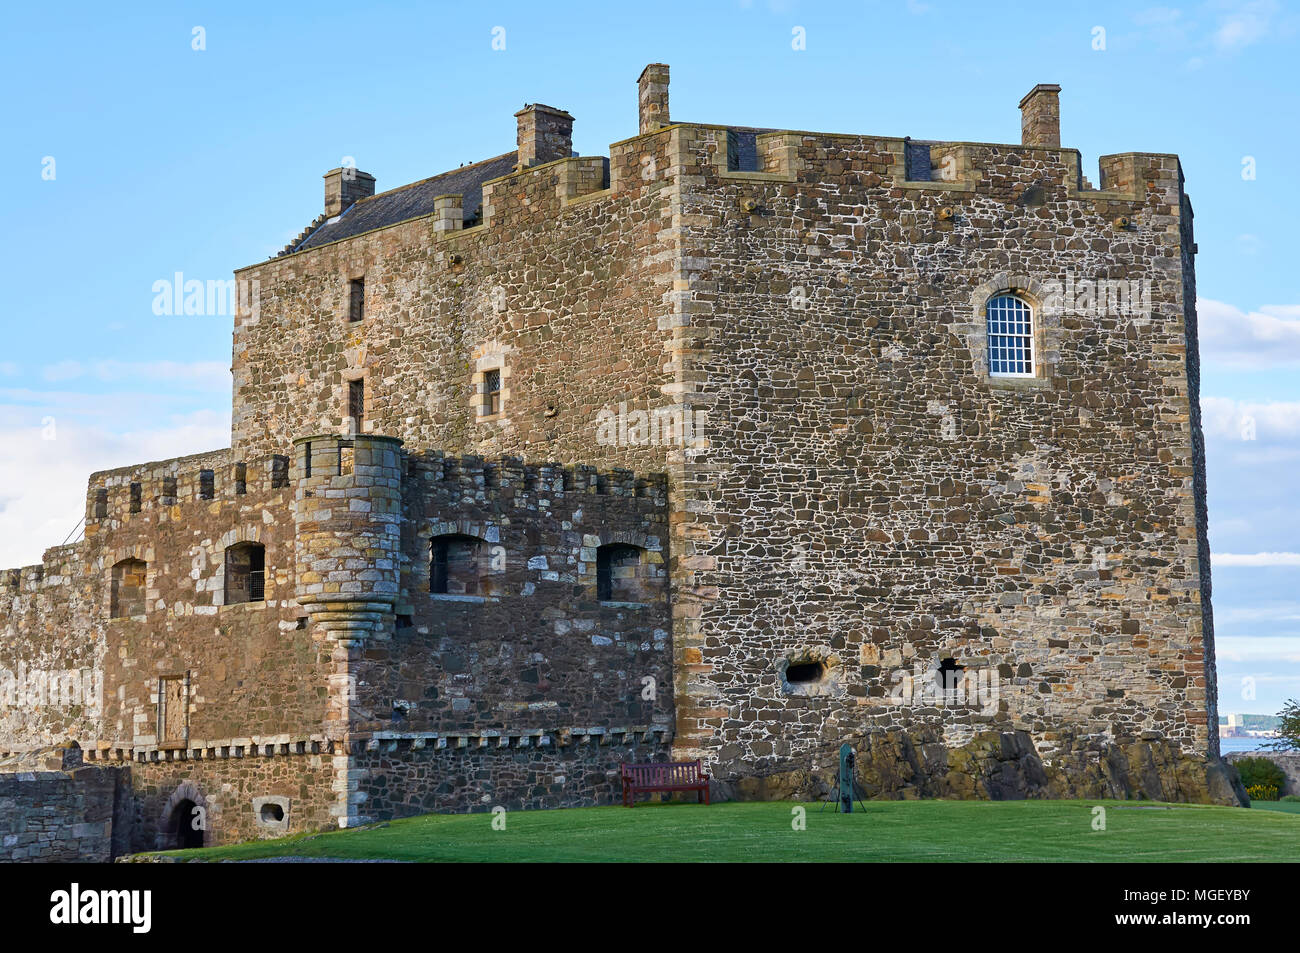 The North Tower of Blackness Fort, situated on the south bank of the Firth of Forth, near Edinburgh in Scotland. - Stock Image